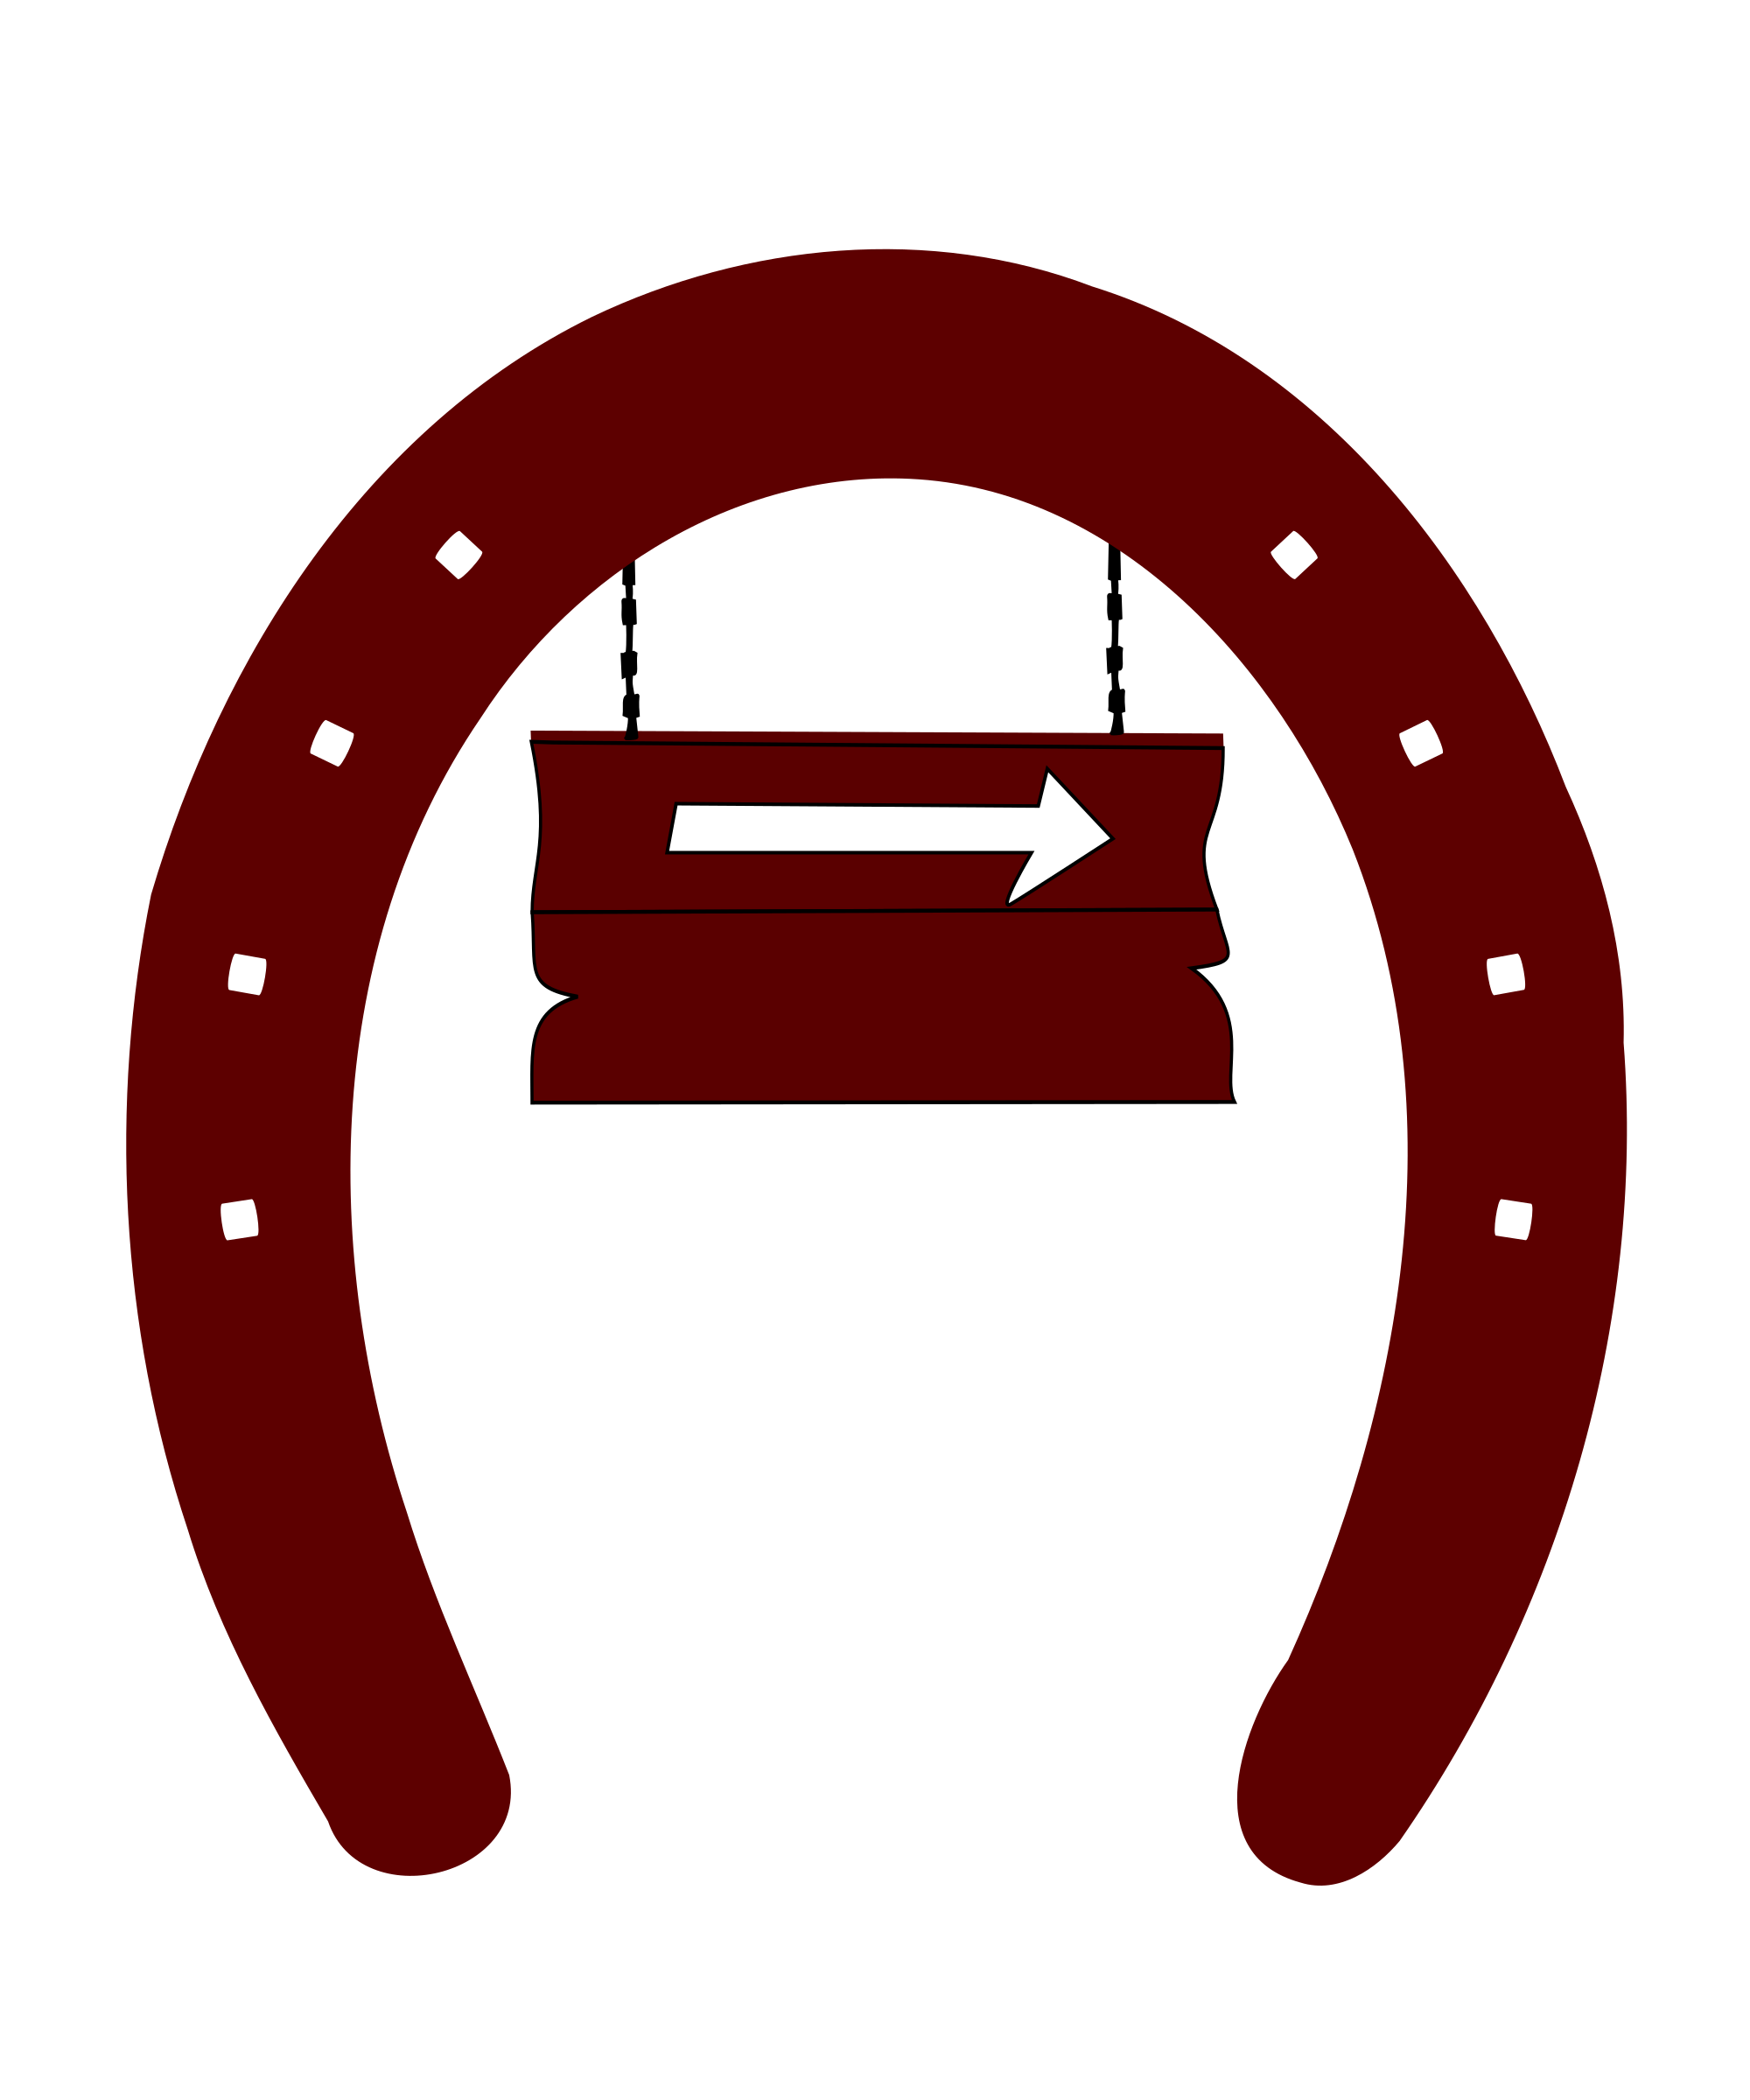 Arrow-sign-horseshoe by yamachem